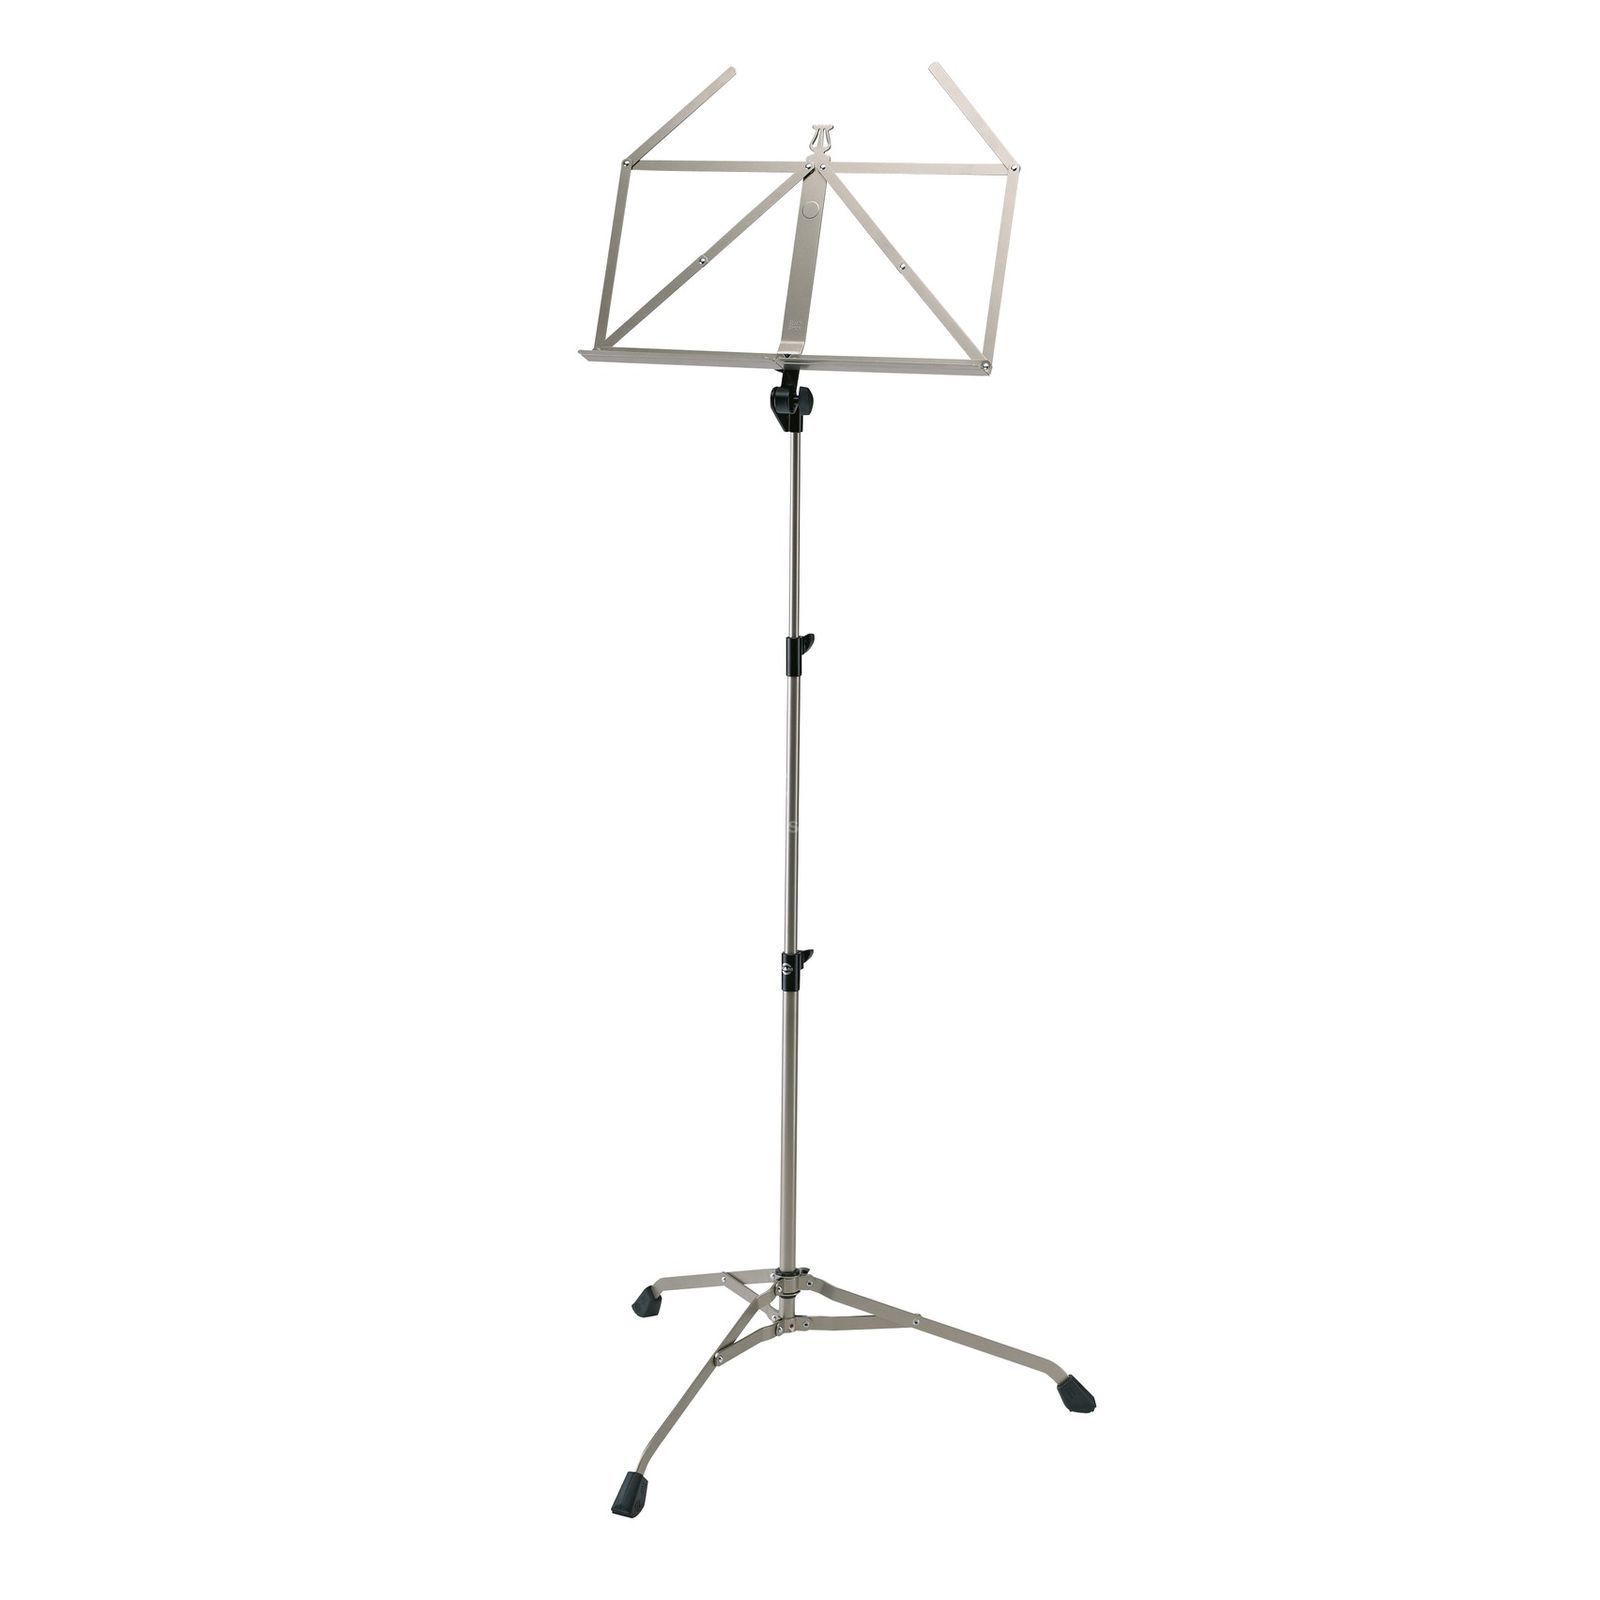 König & Meyer 107 Music Stand nickel-colored <Starline> Product Image